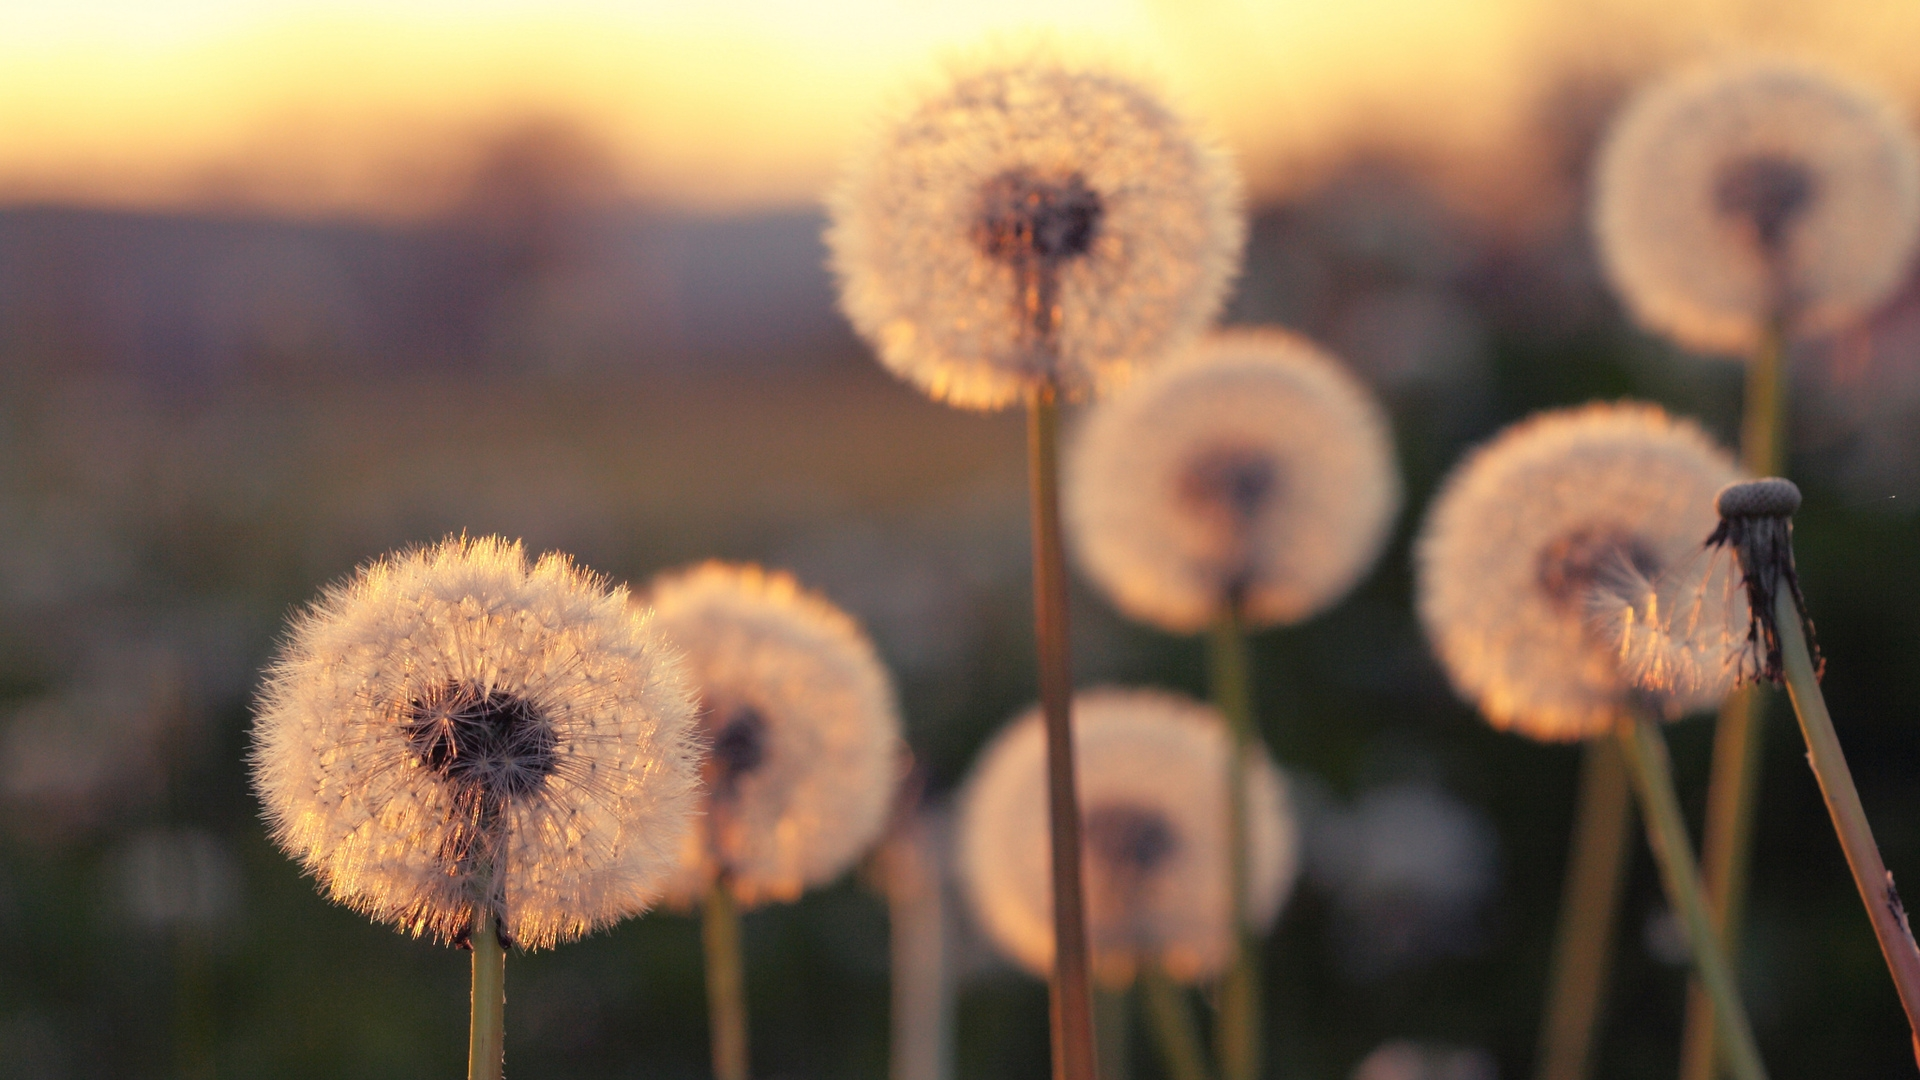 1920x1080-Summer-Blurred-Dandelions-wallpaper-wp360873